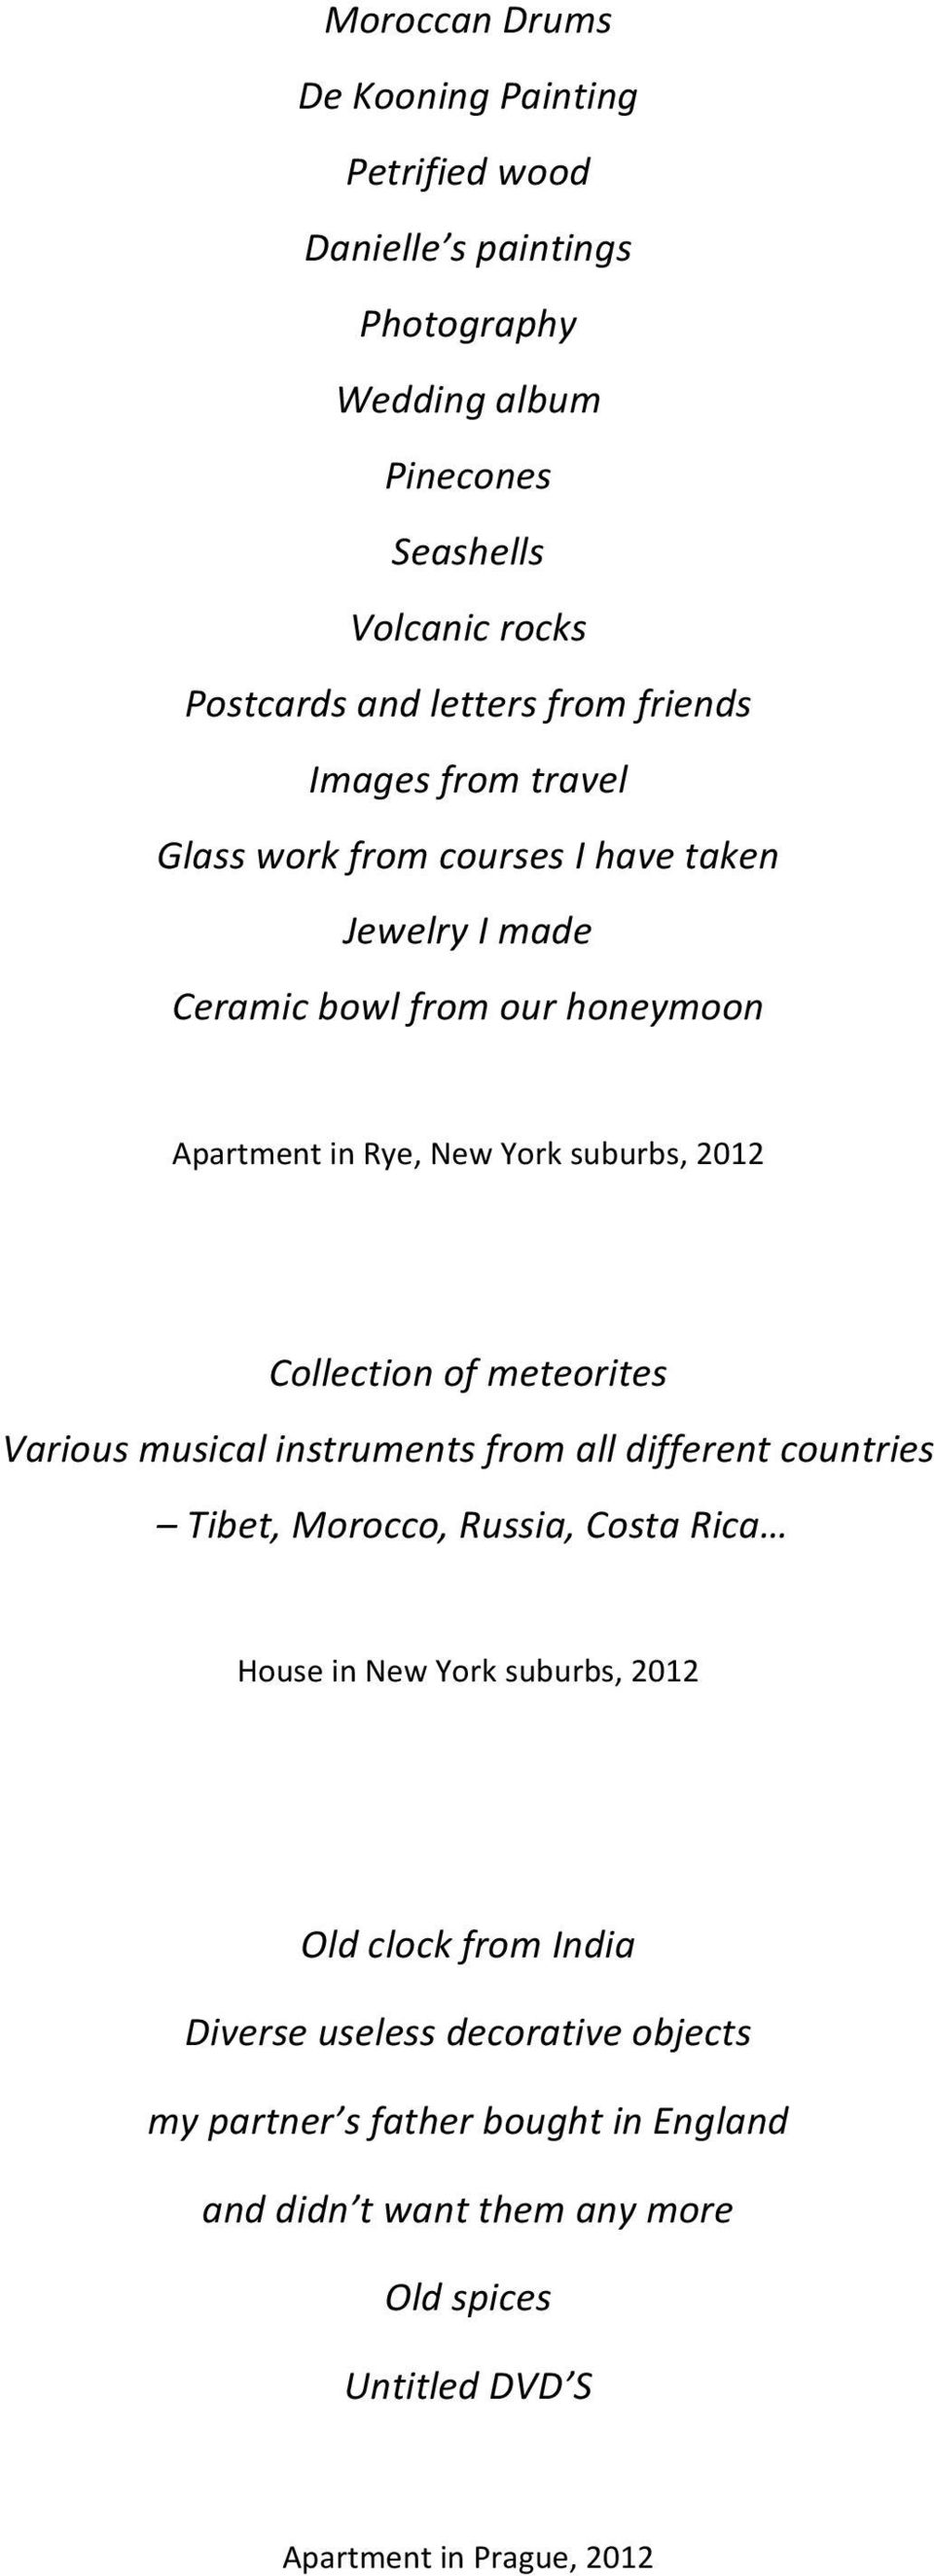 Collection of meteorites Various musical instruments from all different countries Tibet, Morocco, Russia, Costa Rica House in New York suburbs, 2012 Old clock